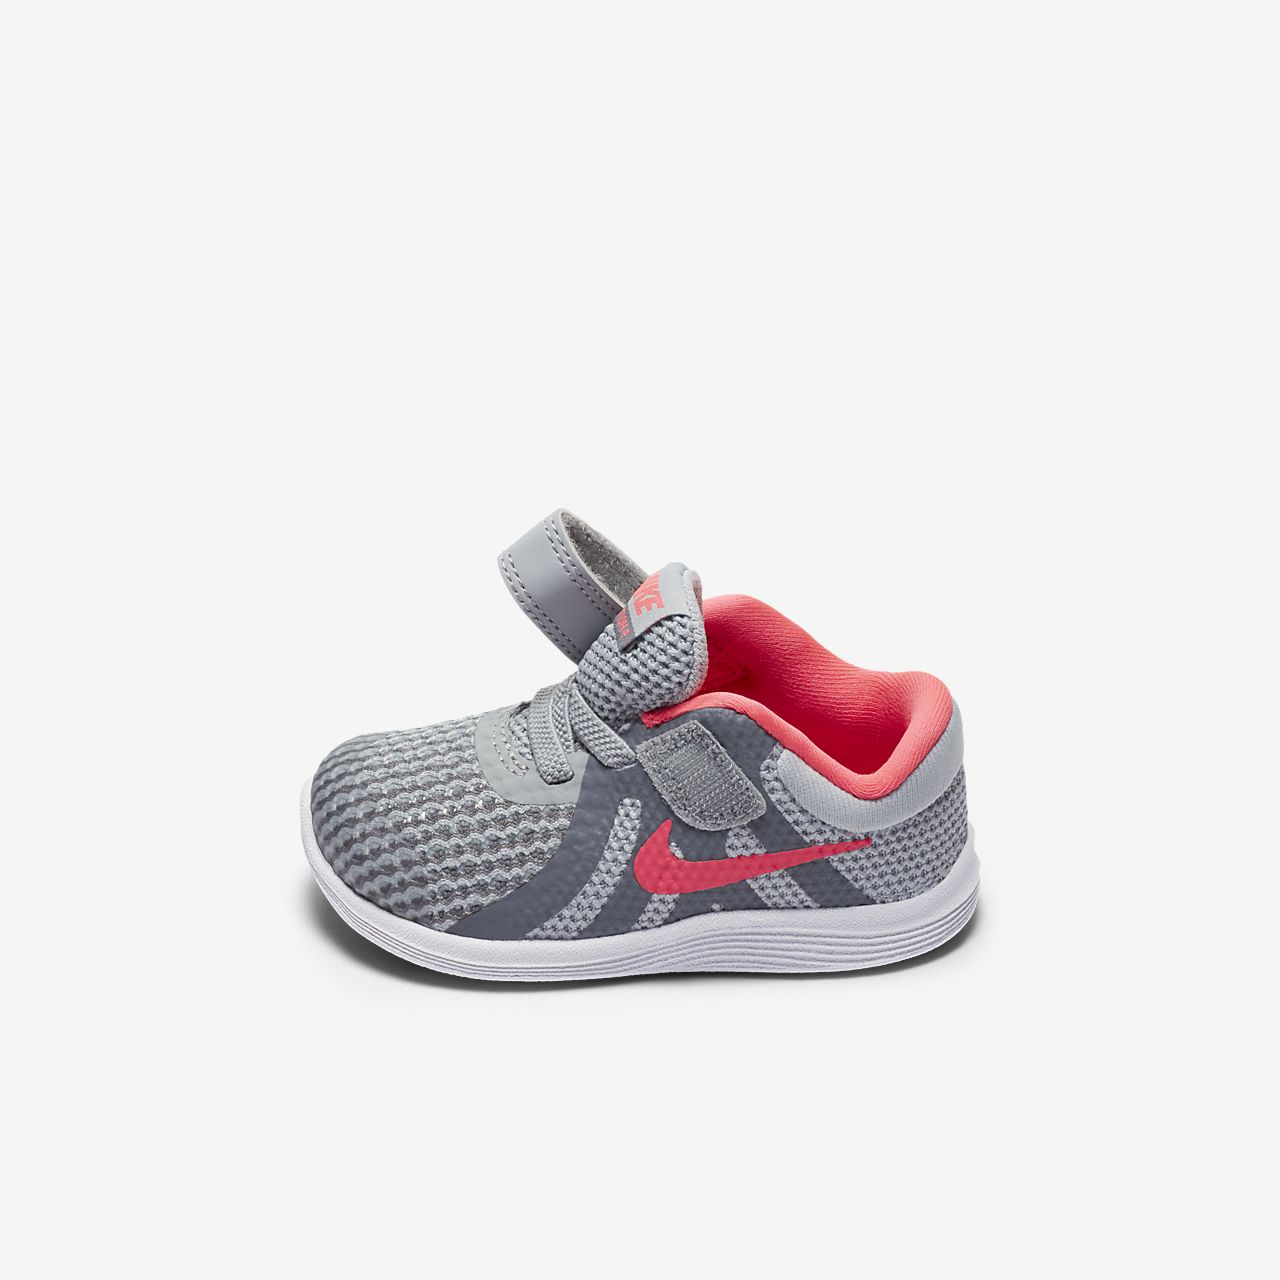 8248bd7168951 Nike Revolution 4 Infant Toddler Shoe. Nike.com